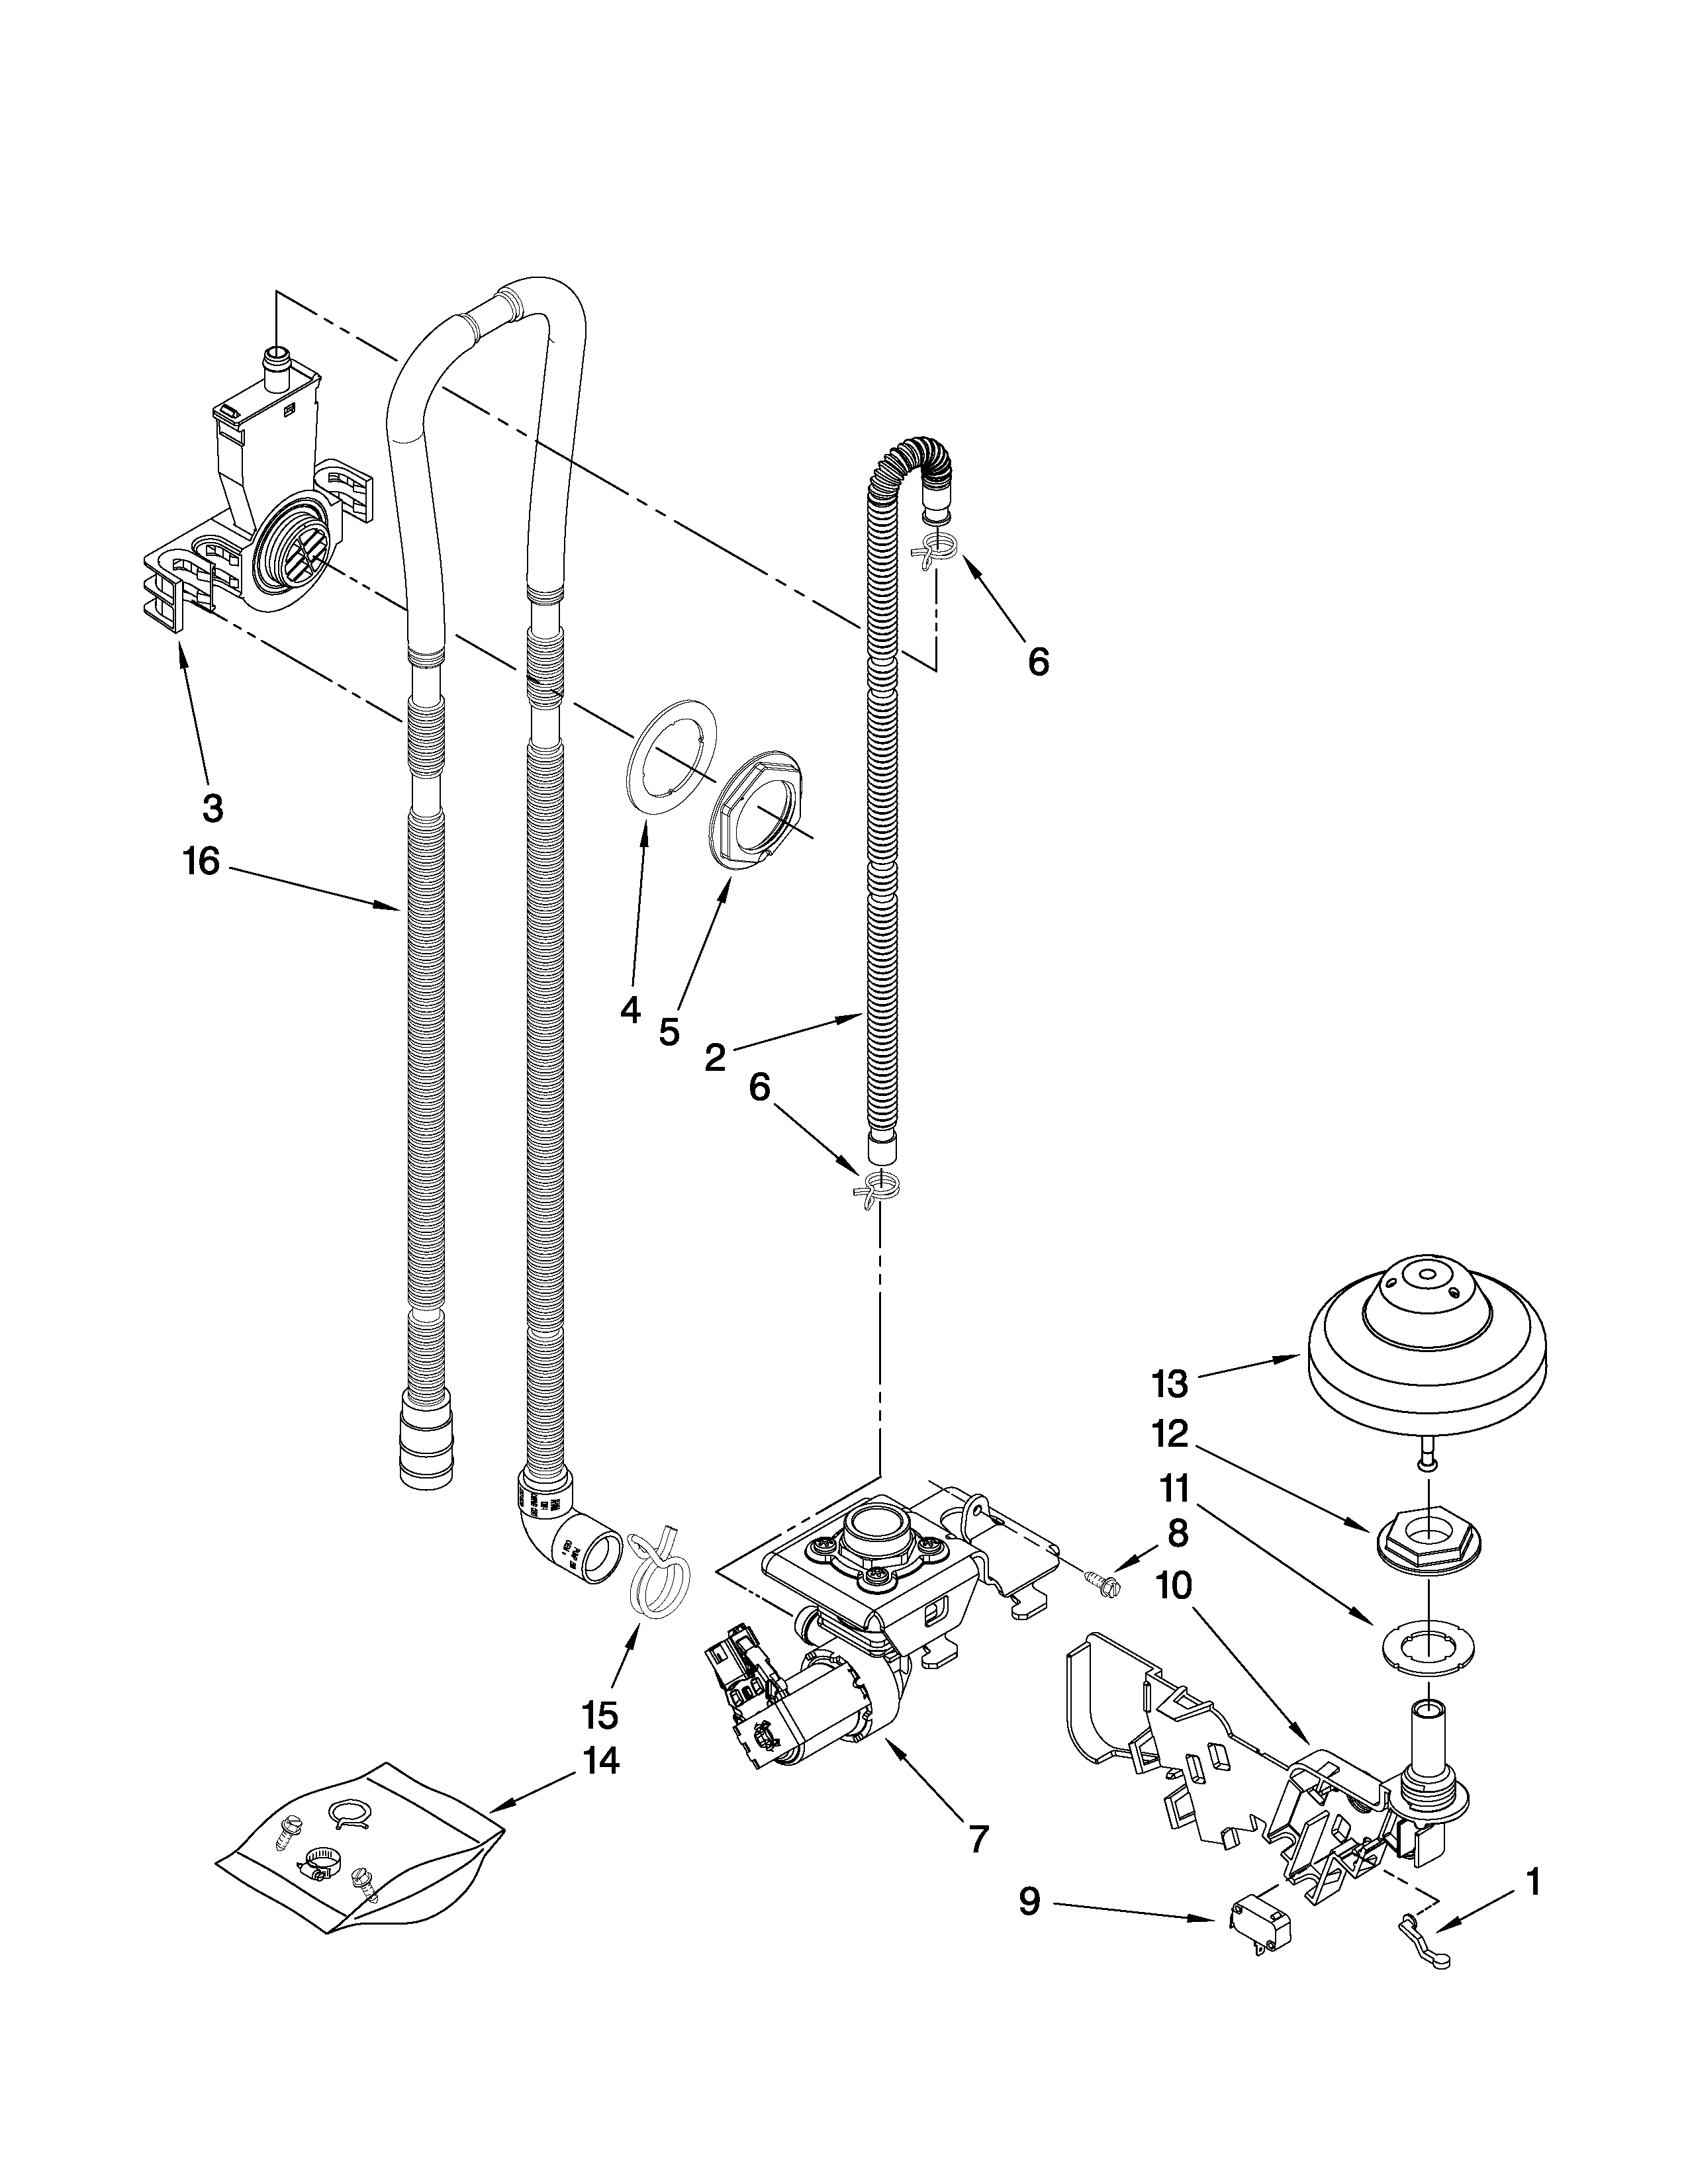 Kenmore Elite 66513192K901 fill, drain and overfill parts diagram